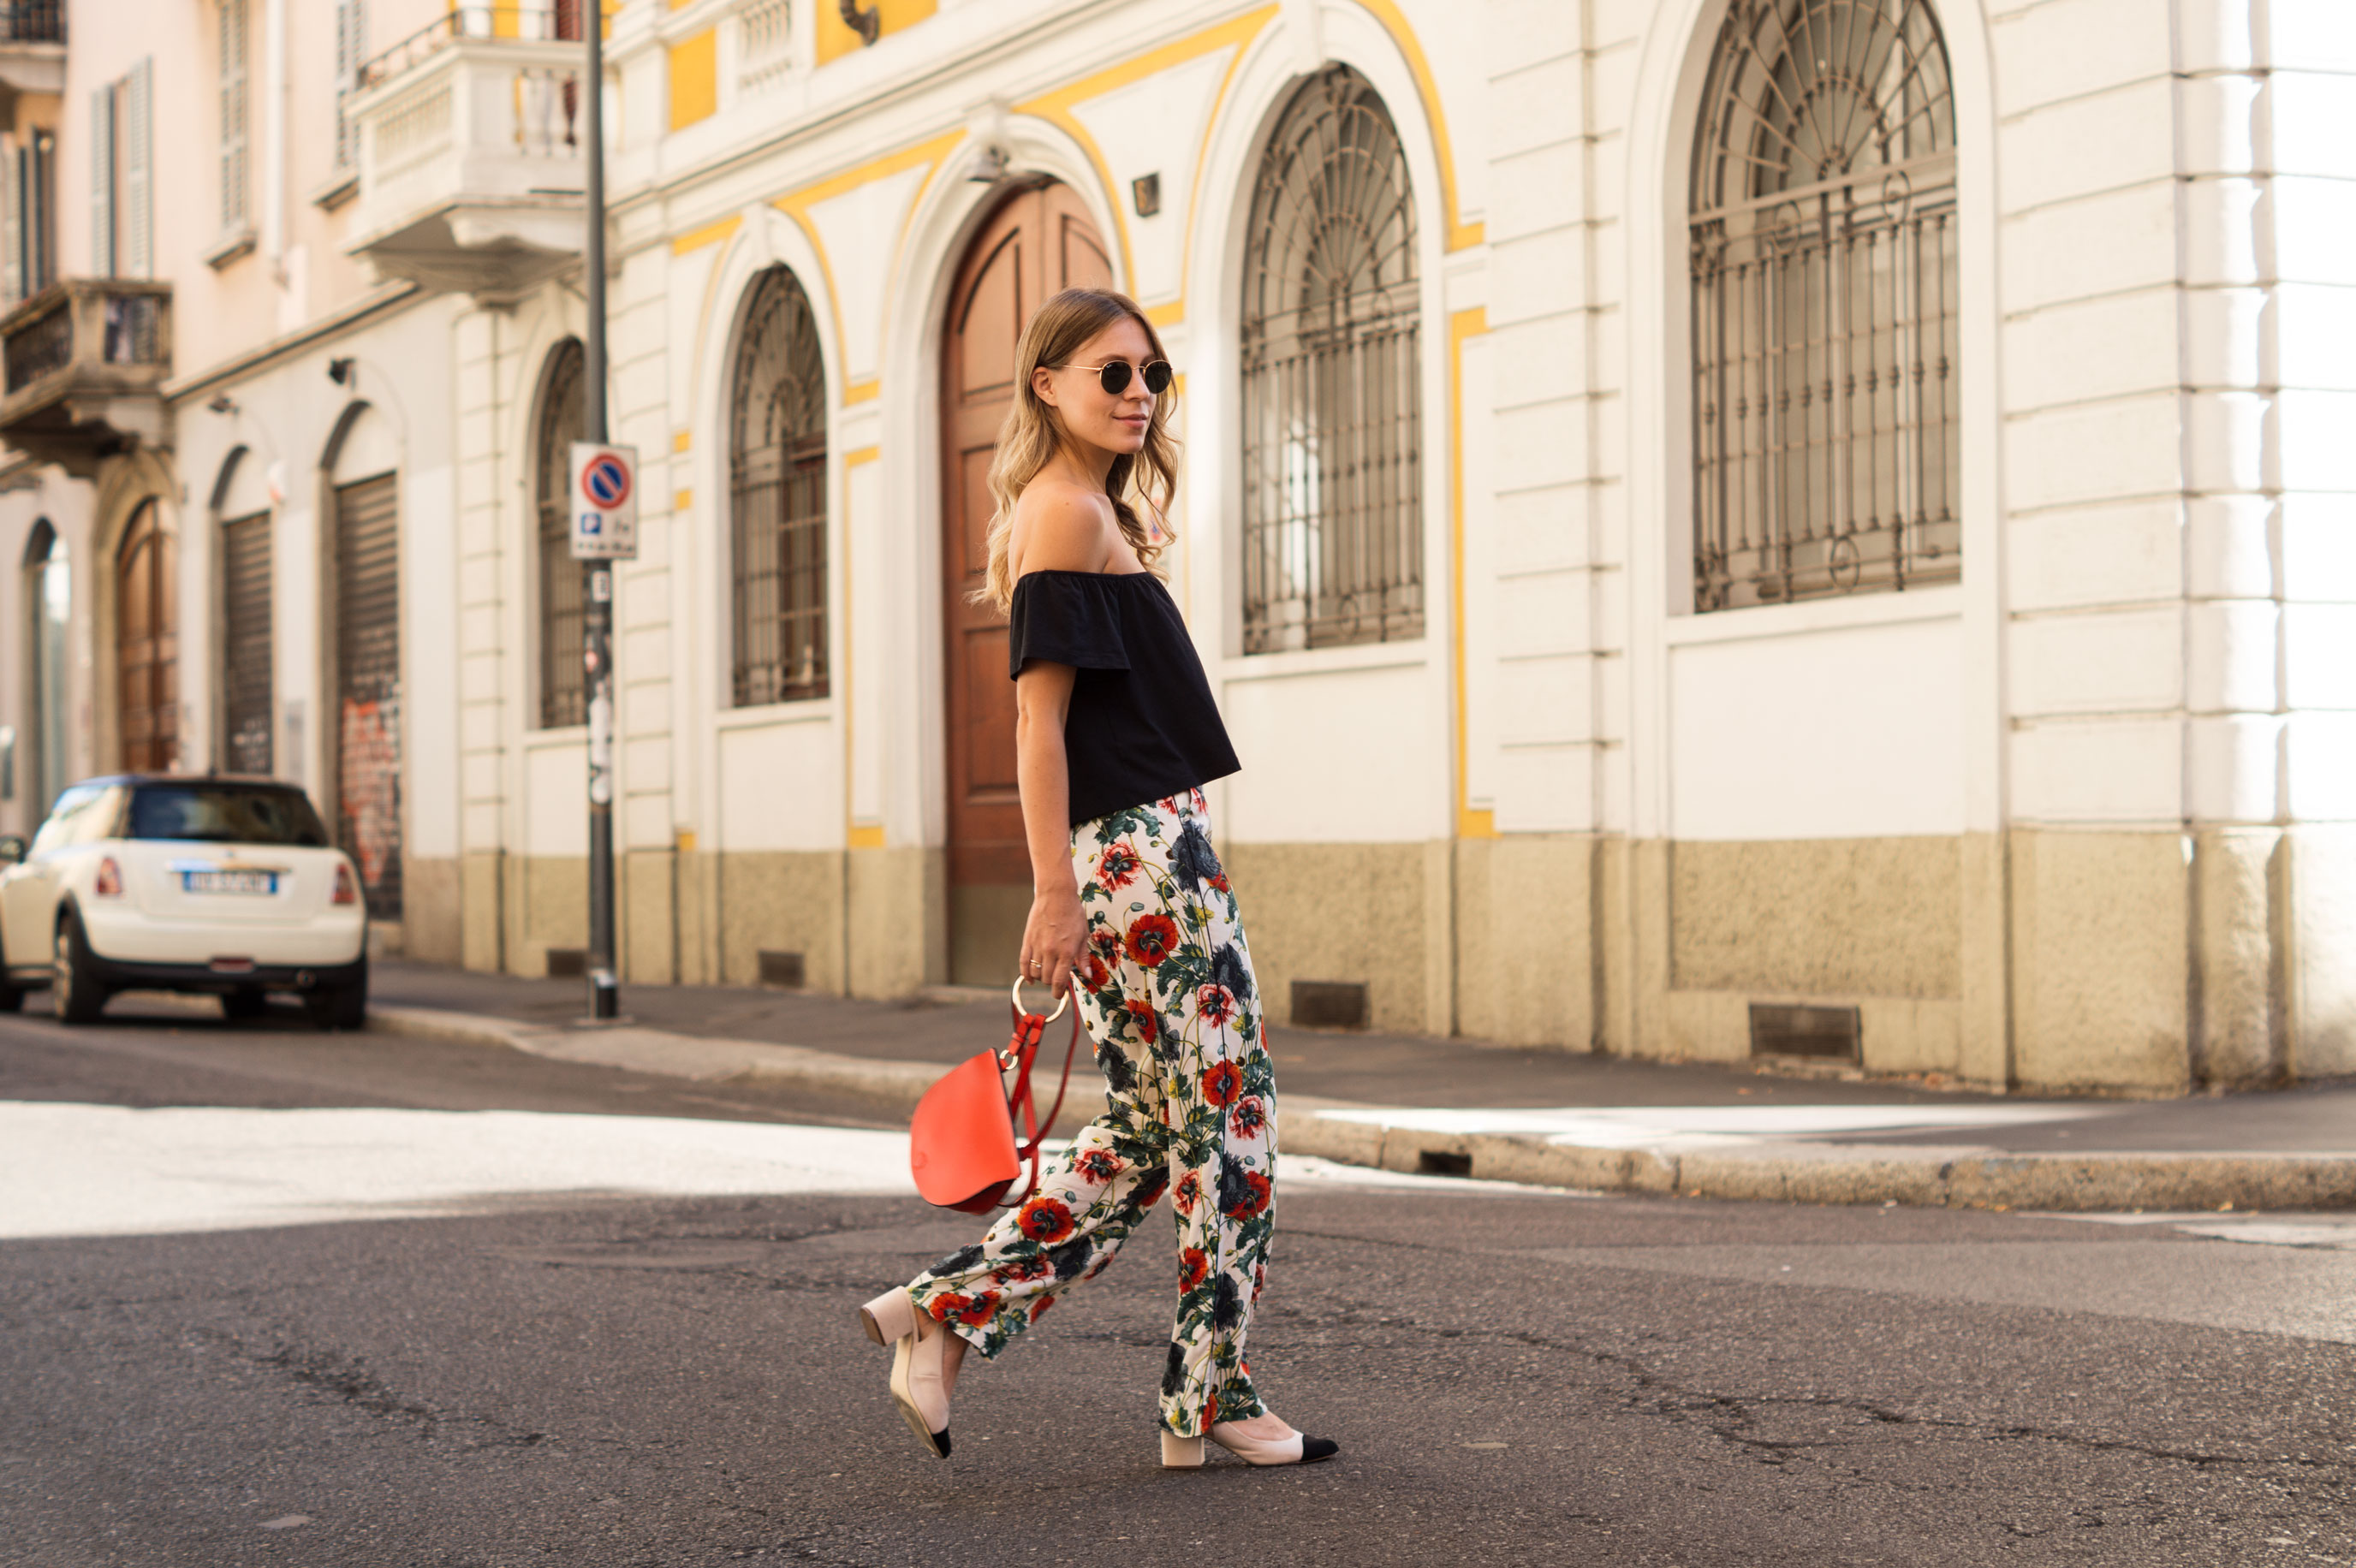 H&M Printhose Milan Sariety Fashionblogger Sommerlook Mailand rote Tasche Chanel Schuhe Dupes Summer Floral Print-5